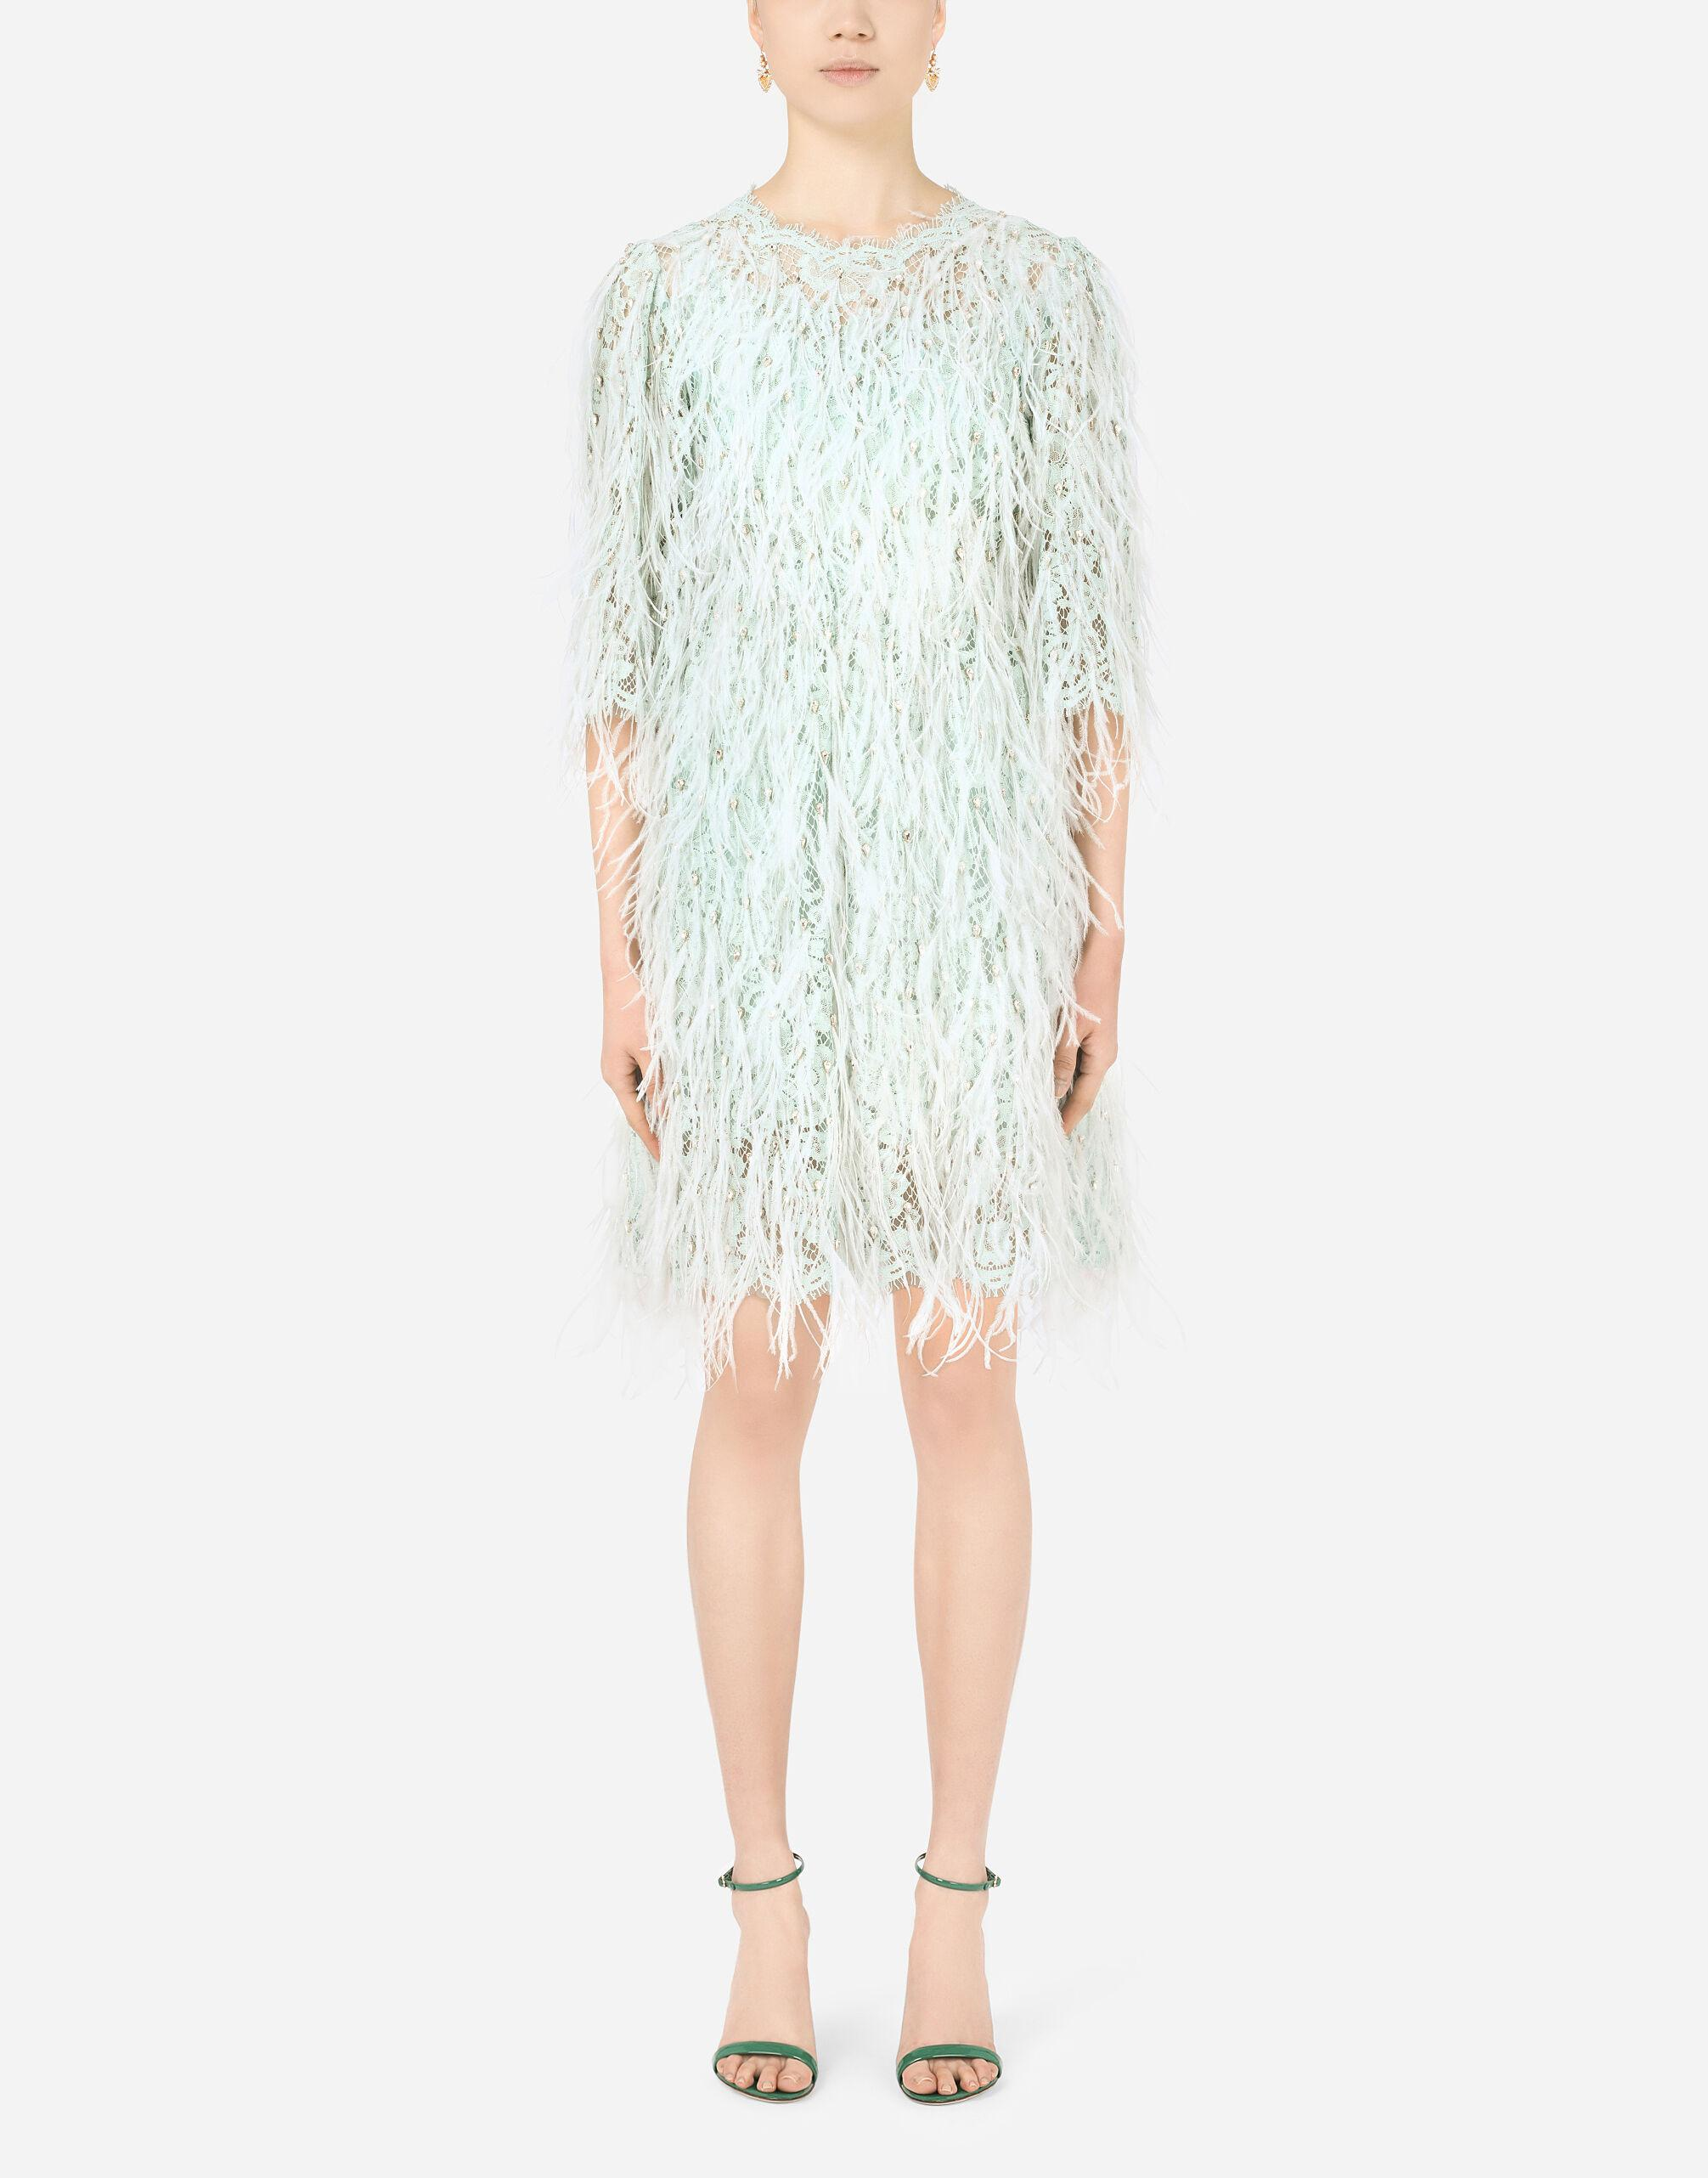 Short lace dress with marabou trim and rhinestones